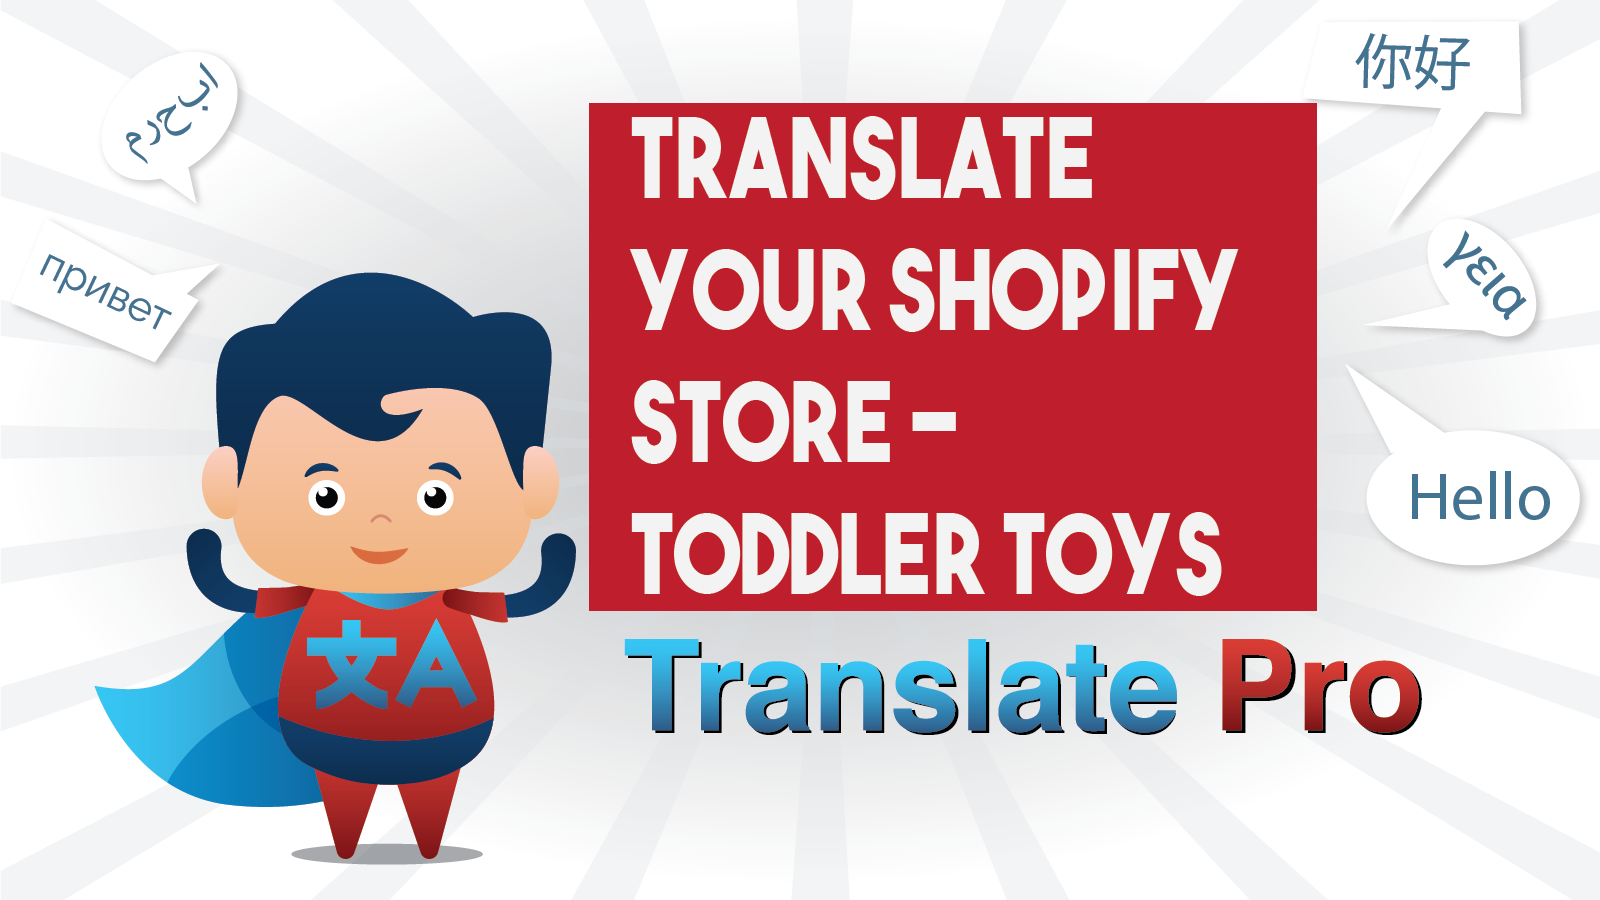 How To Translate Your Shopify Toddler Toys Store